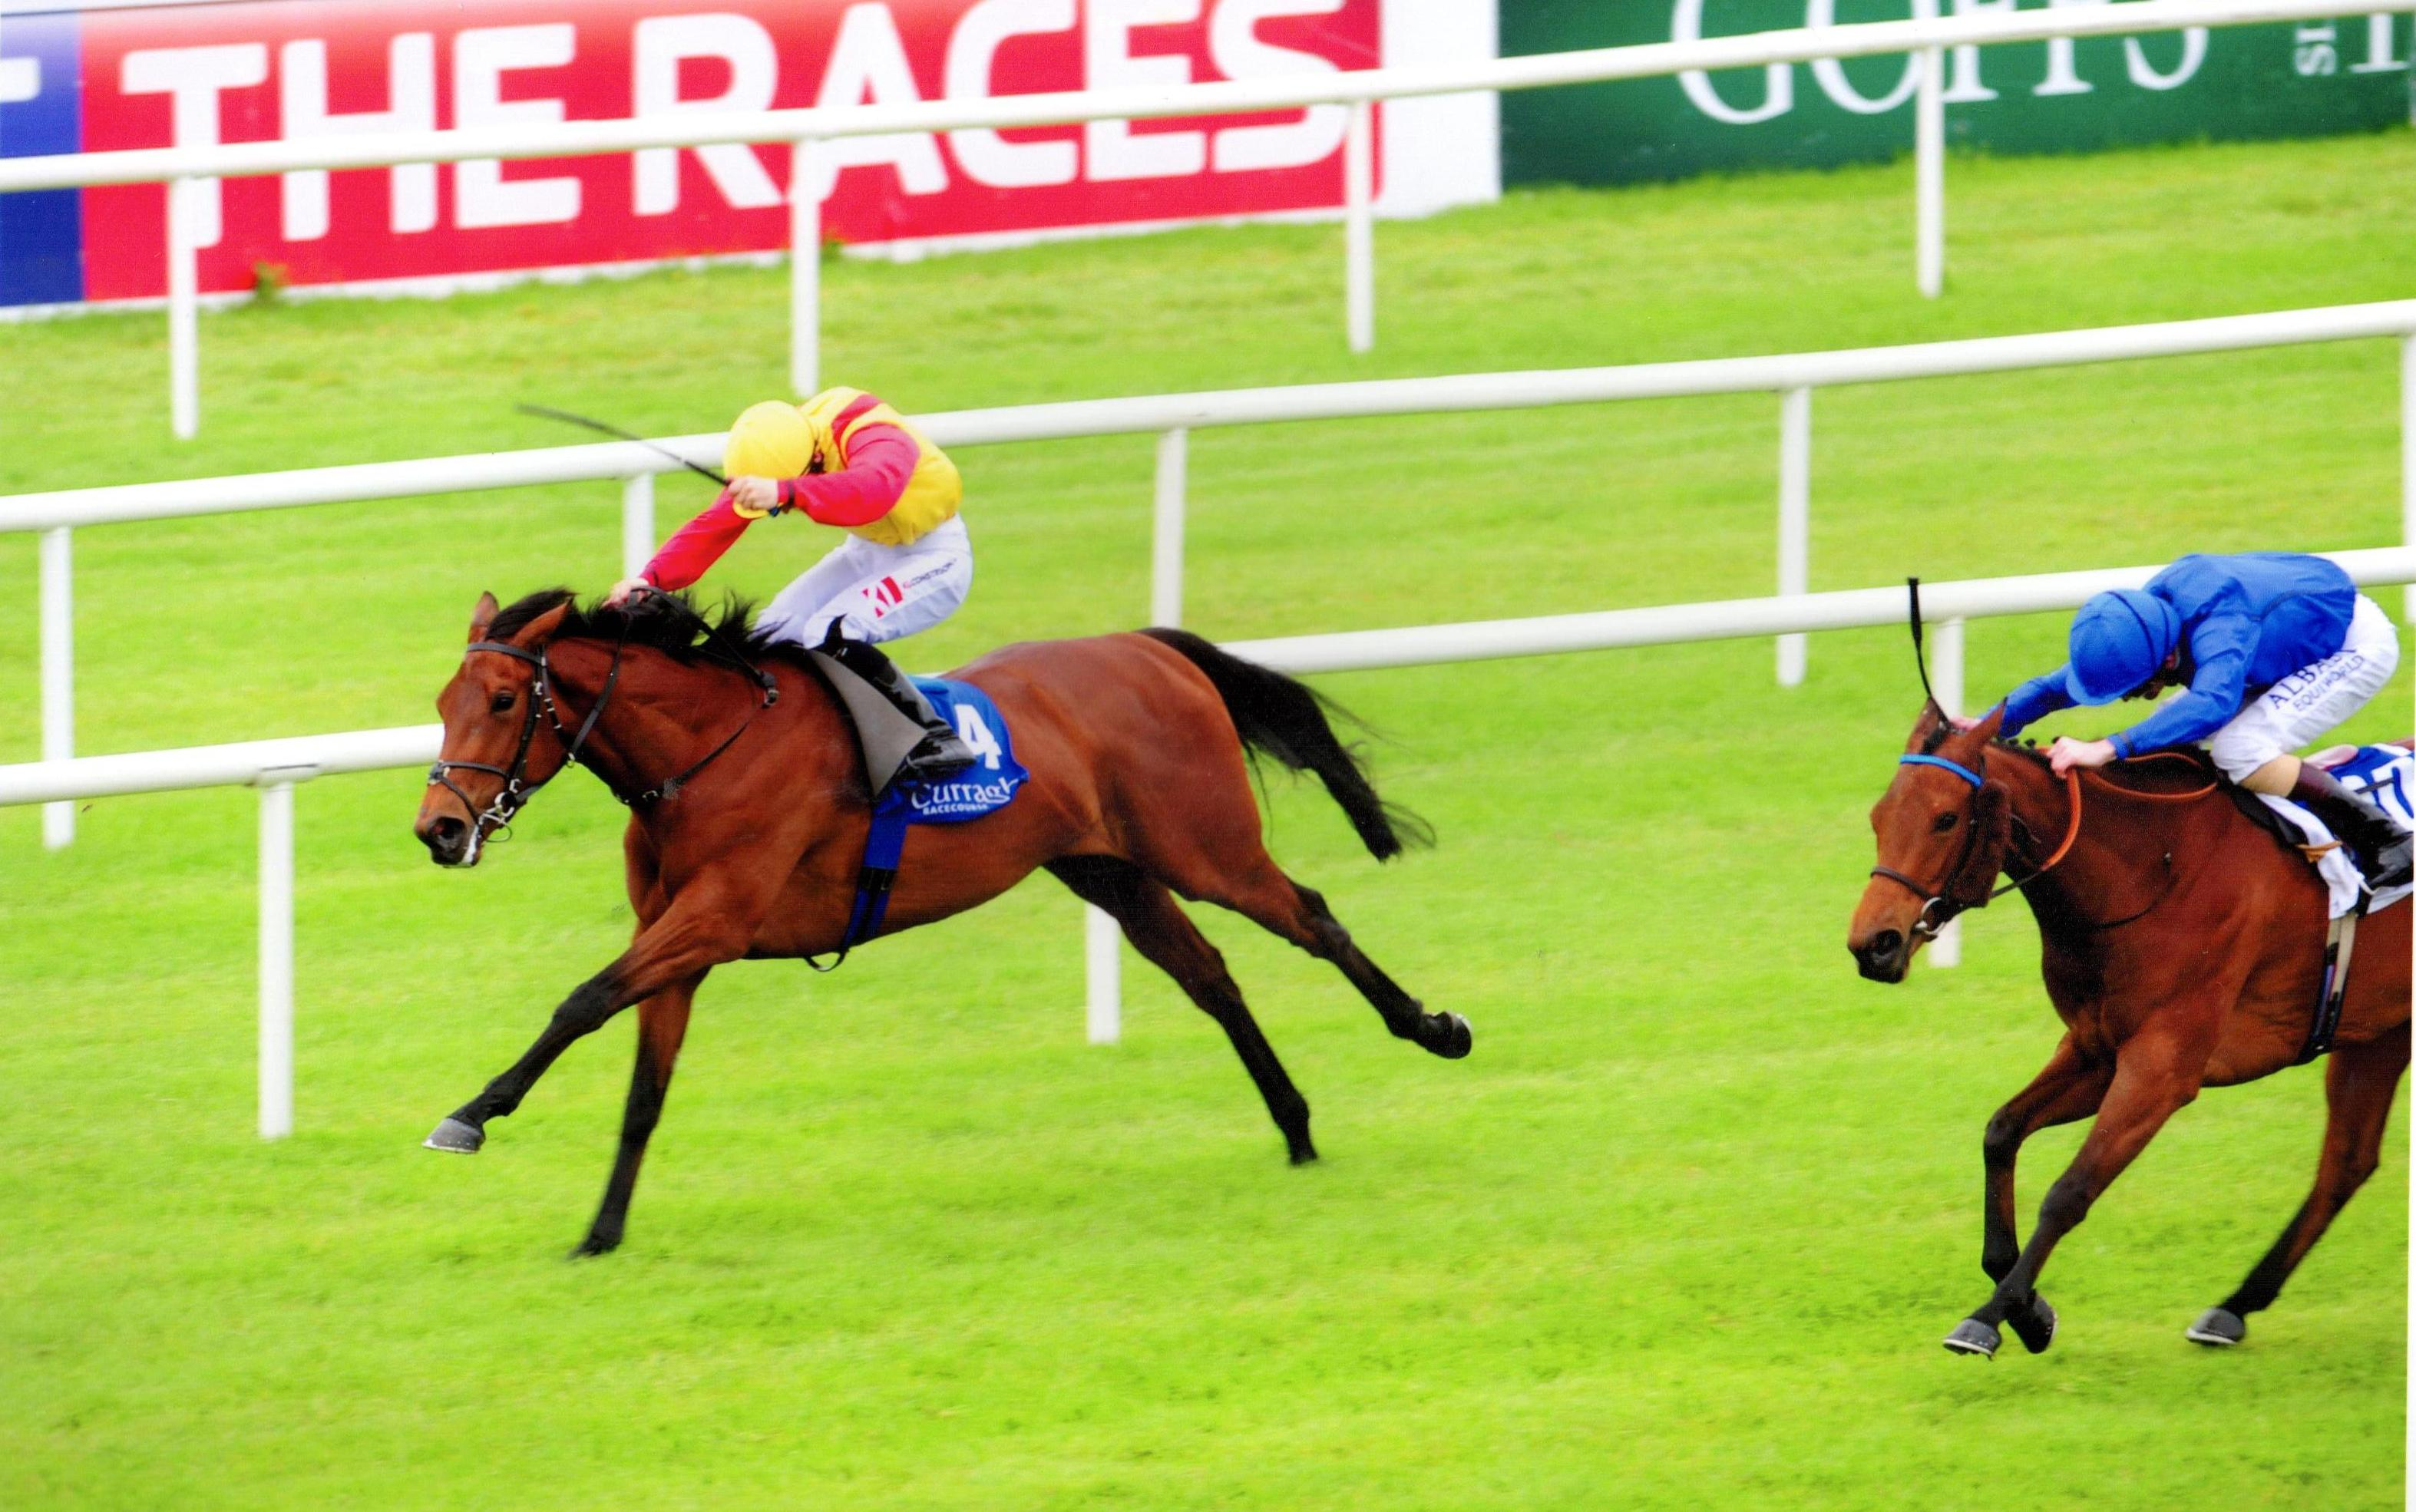 ELEGANT POSE brings up a double for Ger and Colin at The Curragh 20th May 2017